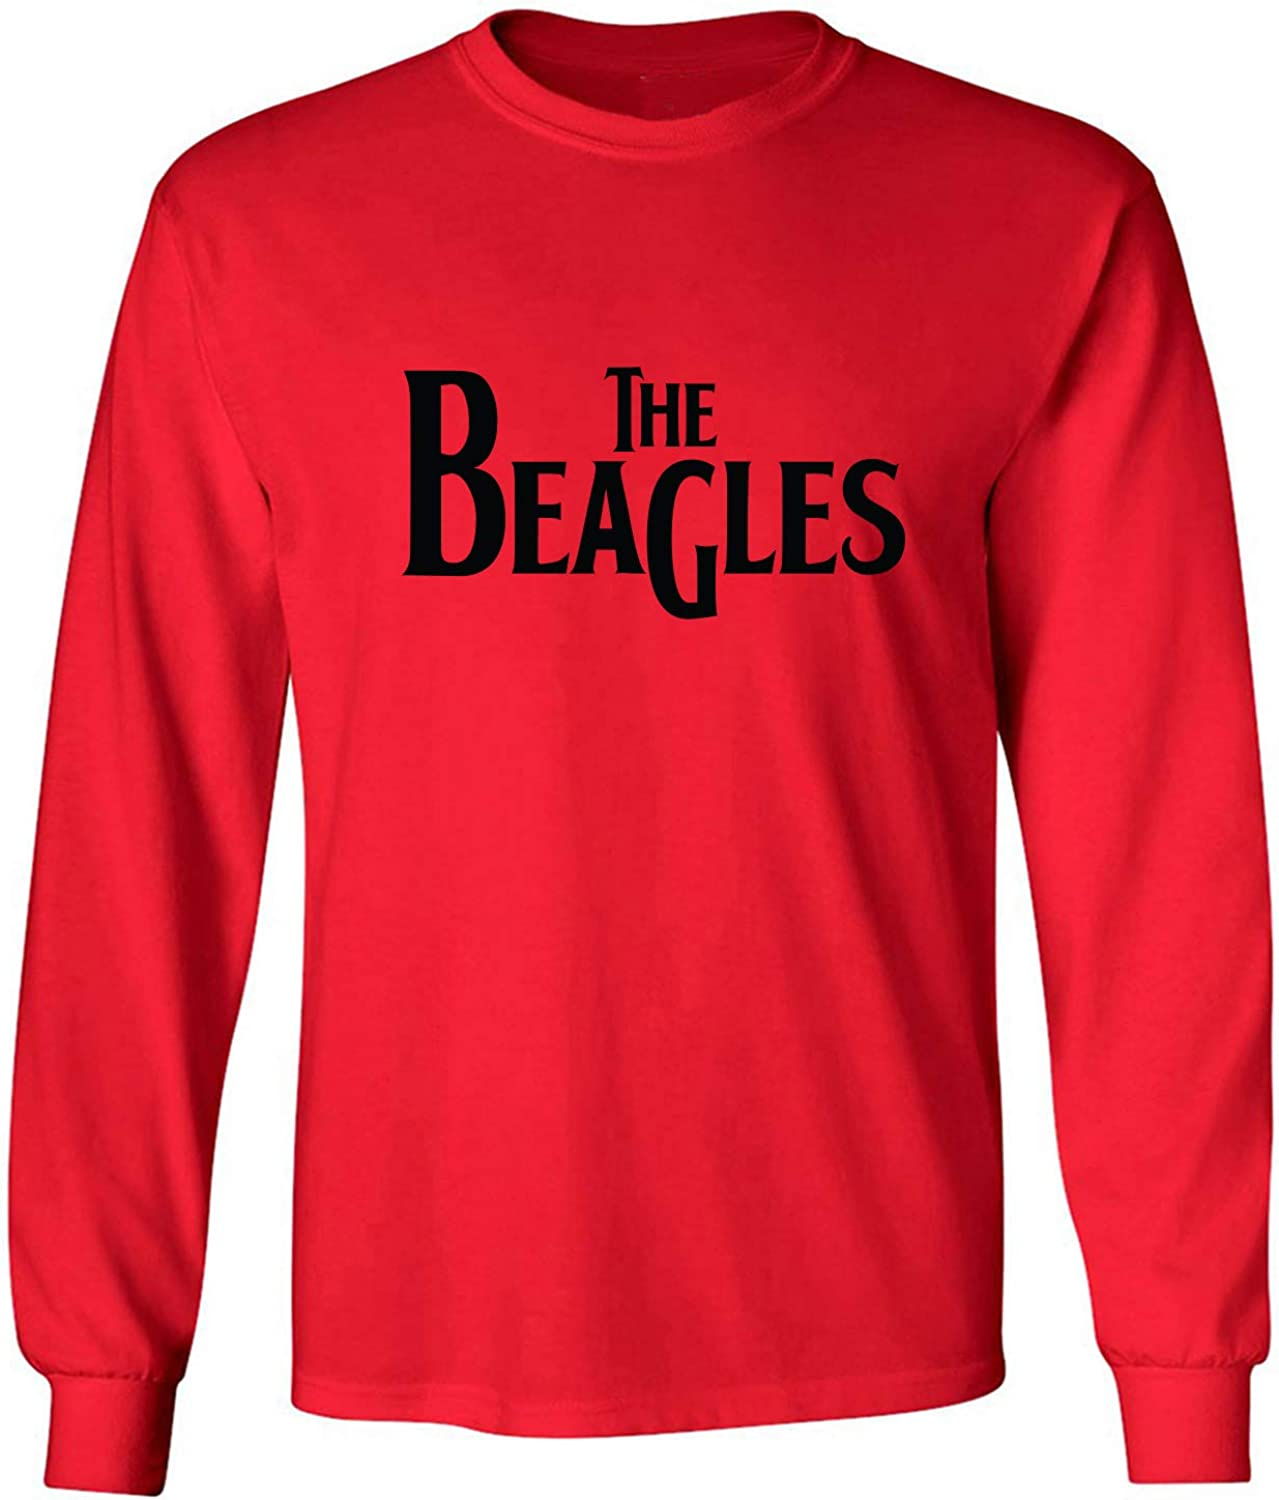 The Beagles Adult Long Sleeve T-Shirt in Red - XXXX-Large